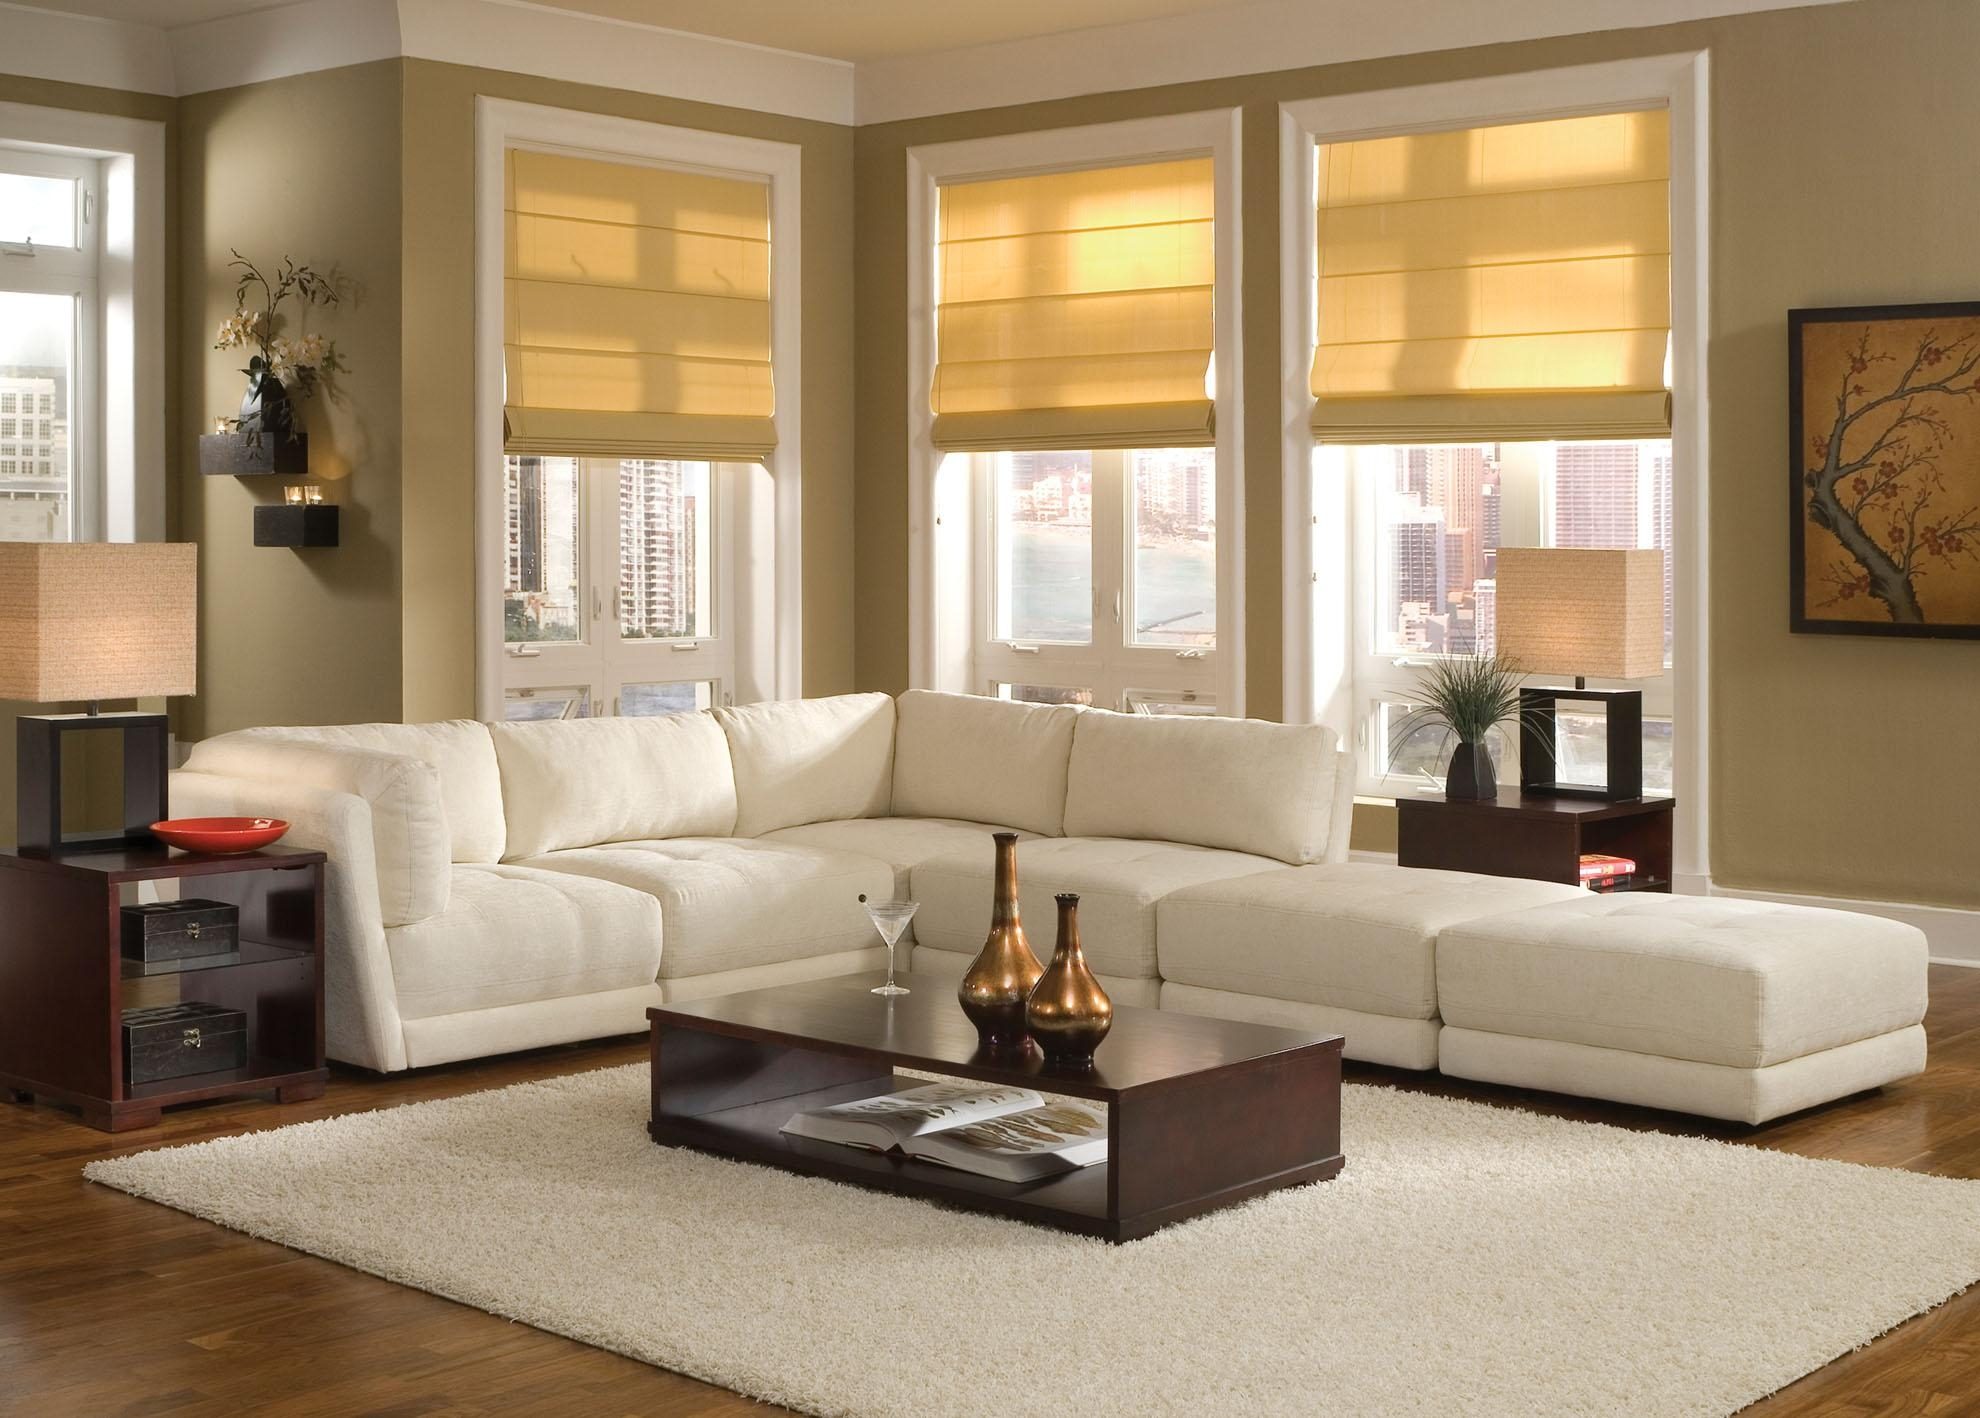 White Sofa Design Ideas & Pictures For Living Room For Living Room Sofas And Chairs (Image 20 of 20)